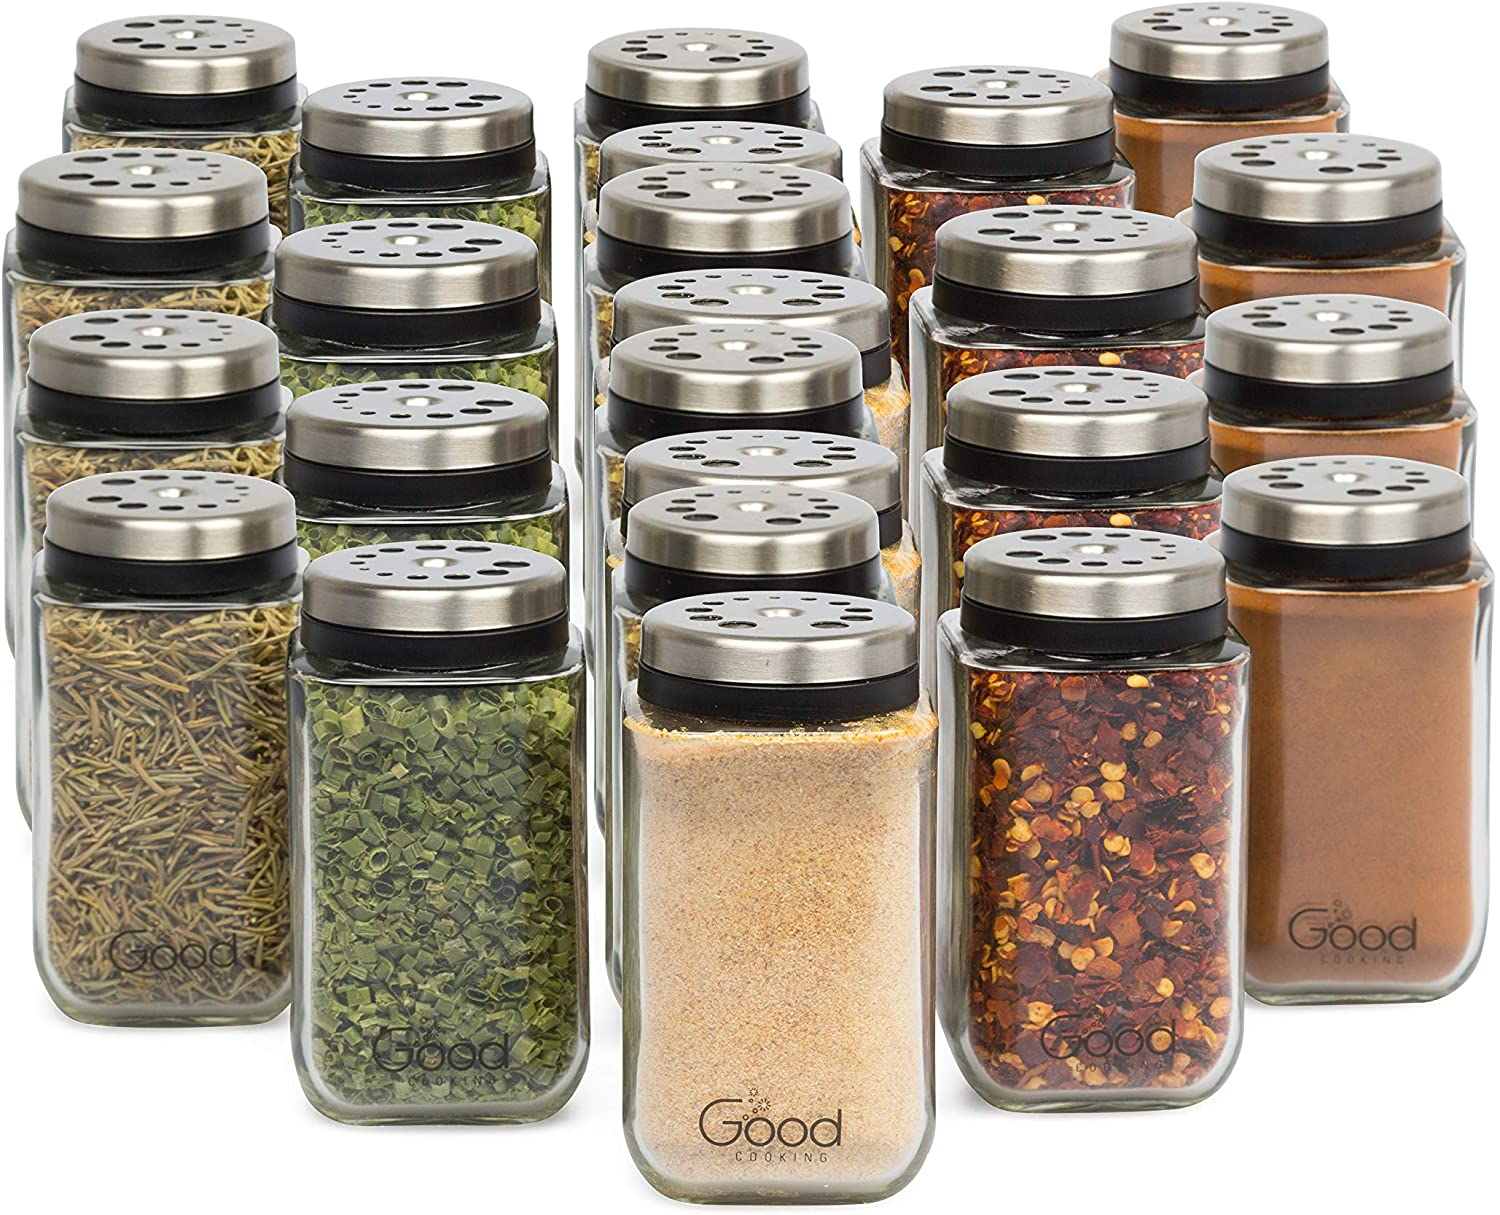 Adjustable Glass Spice Jars Set Of 24 Premium Seasoning Shaker Rub Container Tins With 6 Pouring Sizes Kitchen Dining